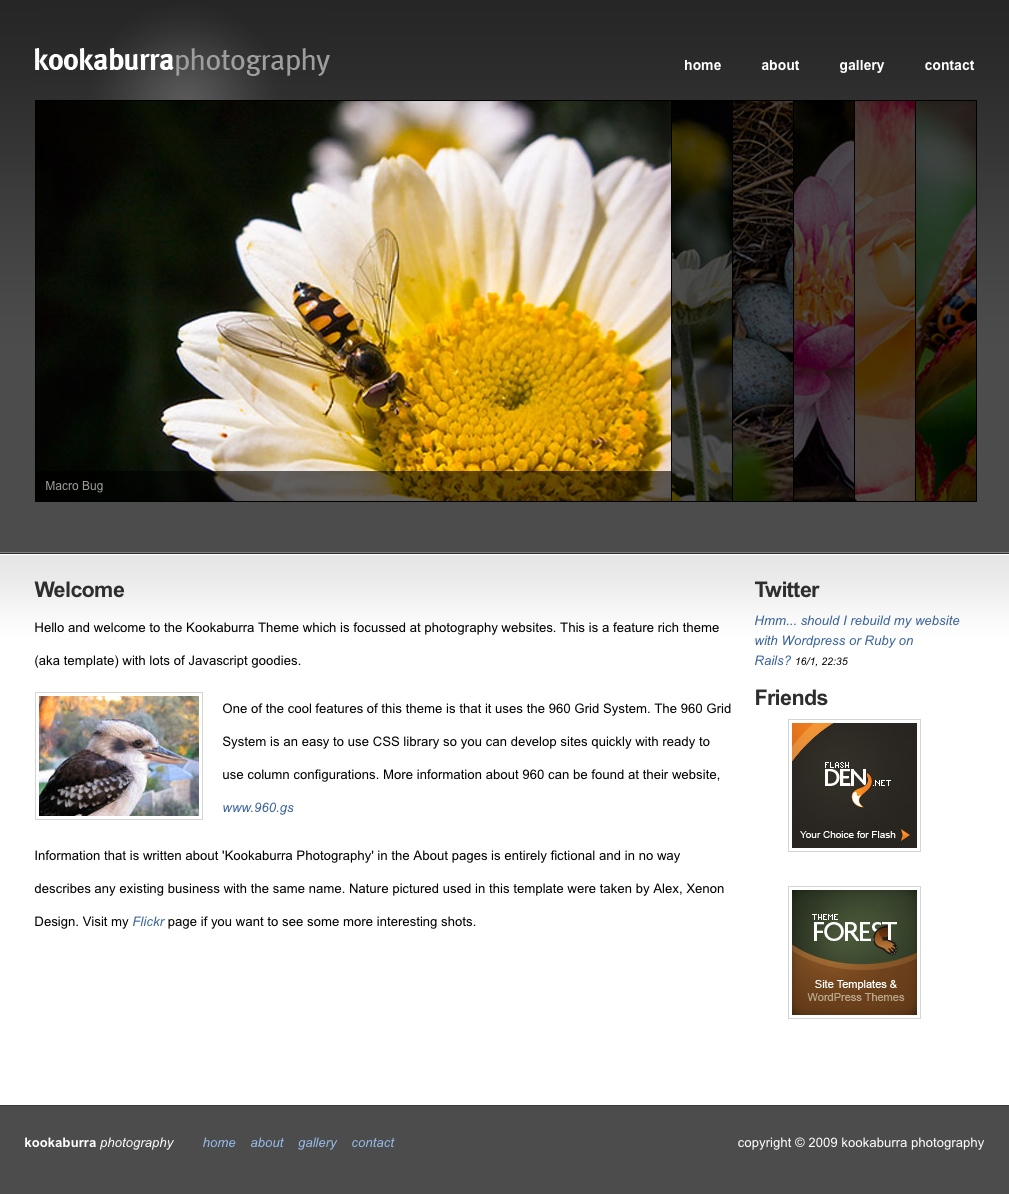 Kookaburra Photography - The frontpage has a large image slideshow where the images will slide open in sequence, duration is customizable. This page also features a Twitter widget which will get your latest tweet, Javascript powered. The whole site uses the 960 Grid System to ensure that its easily customizable.